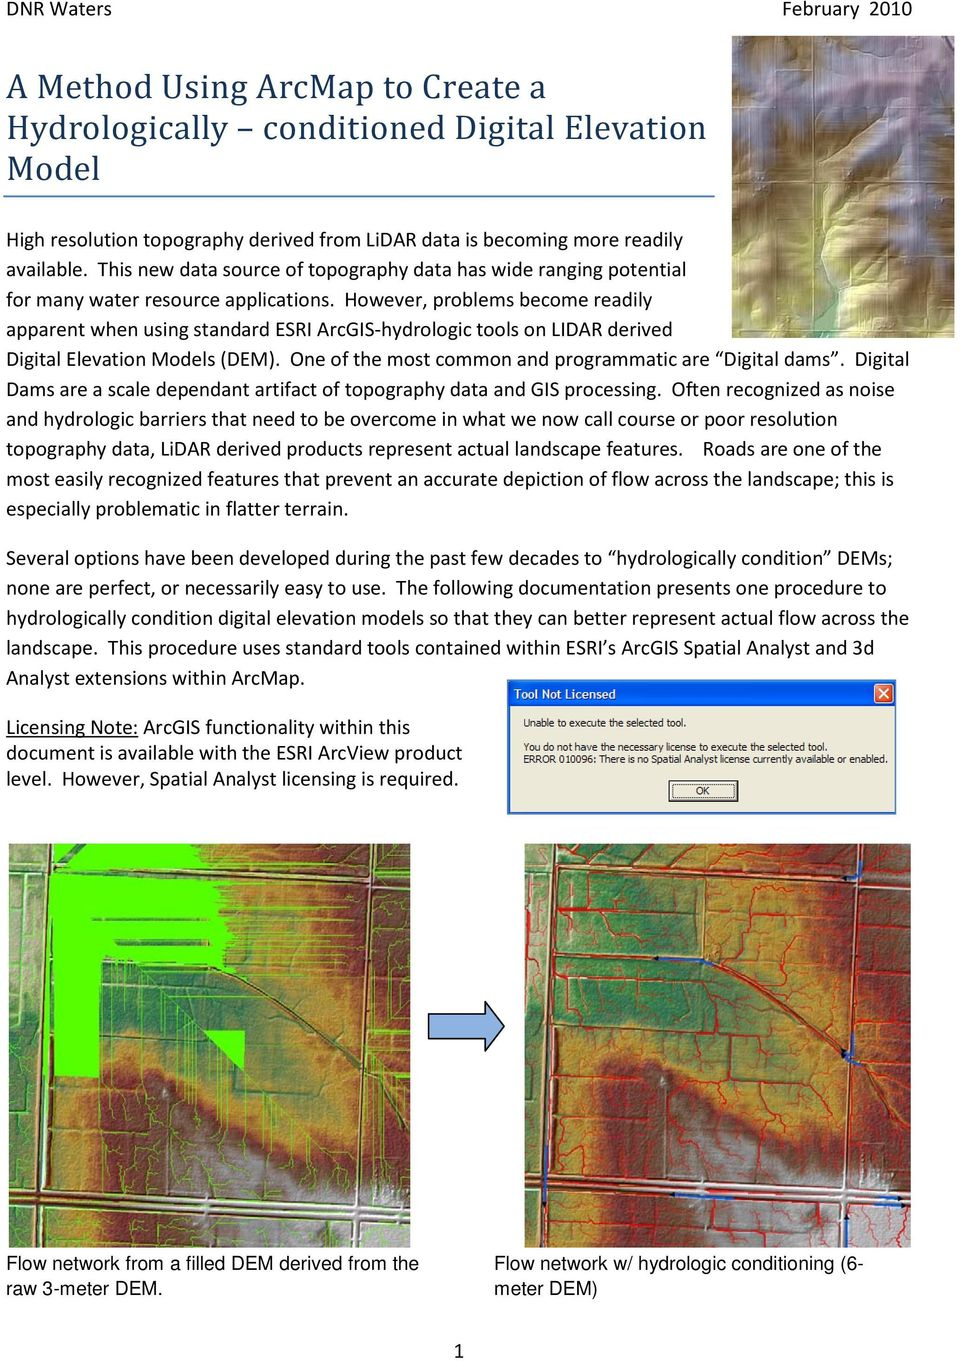 A Method Using ArcMap to Create a Hydrologically conditioned